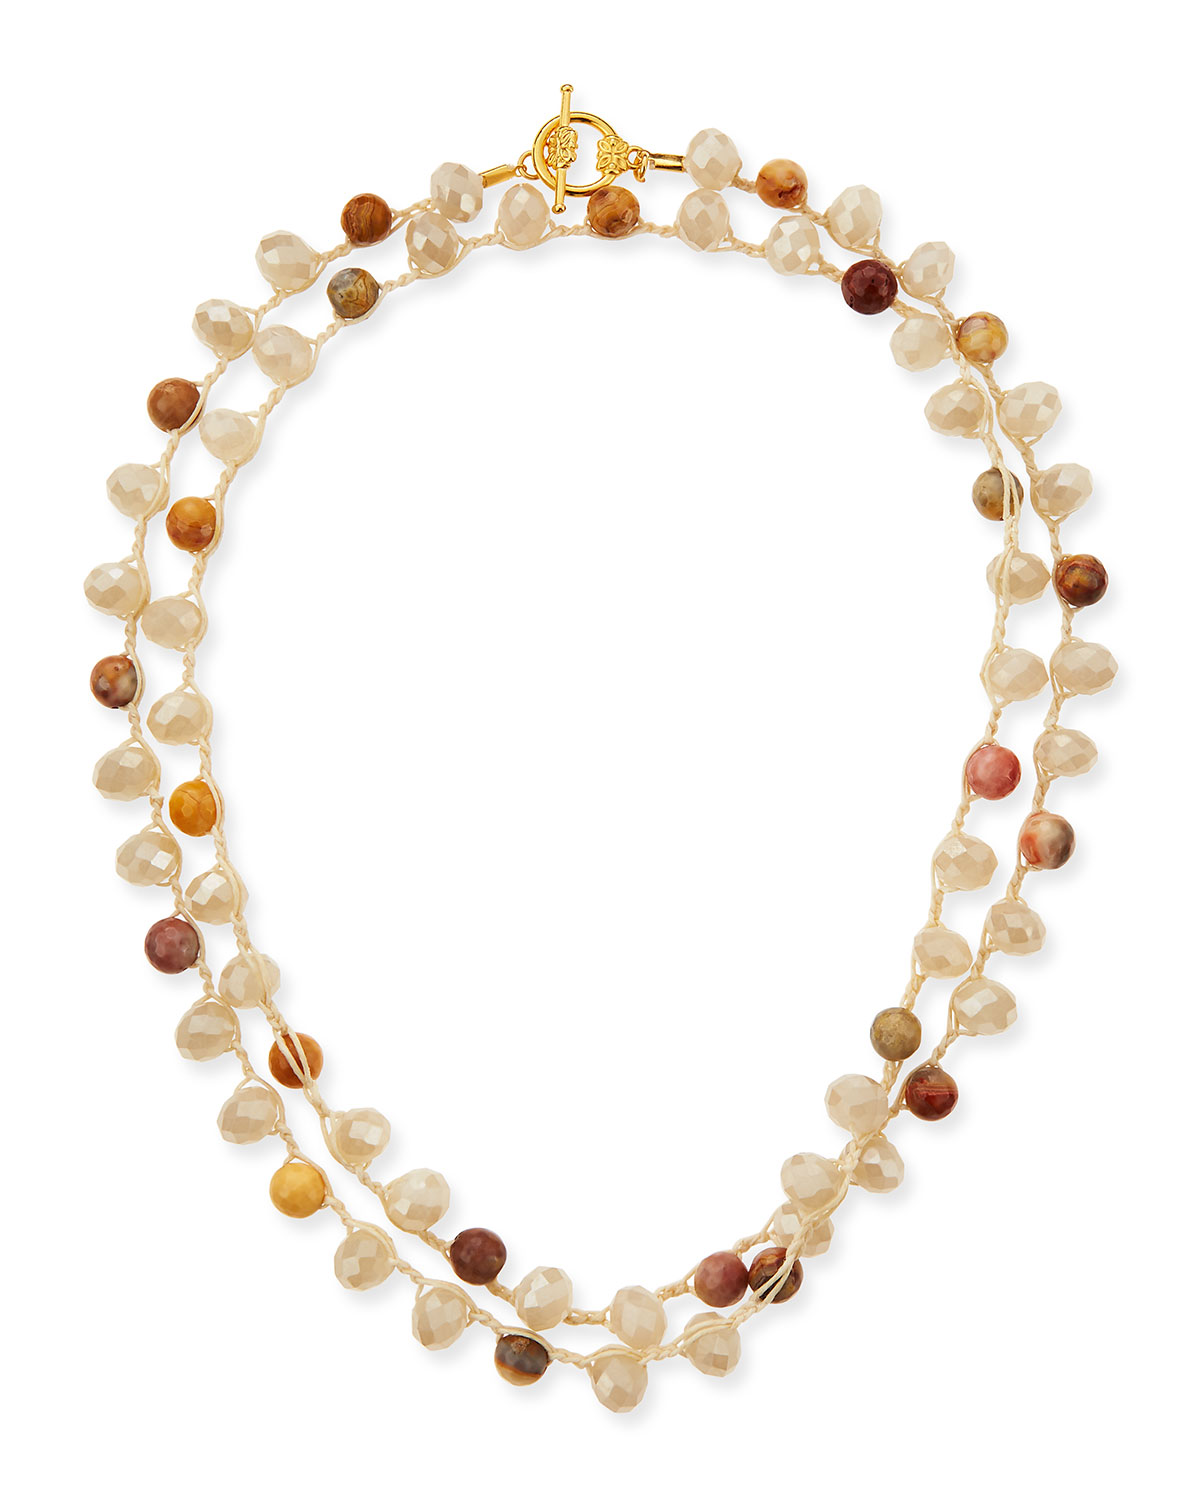 An Old Soul Jewelryfaceted Bead Necklace 36l